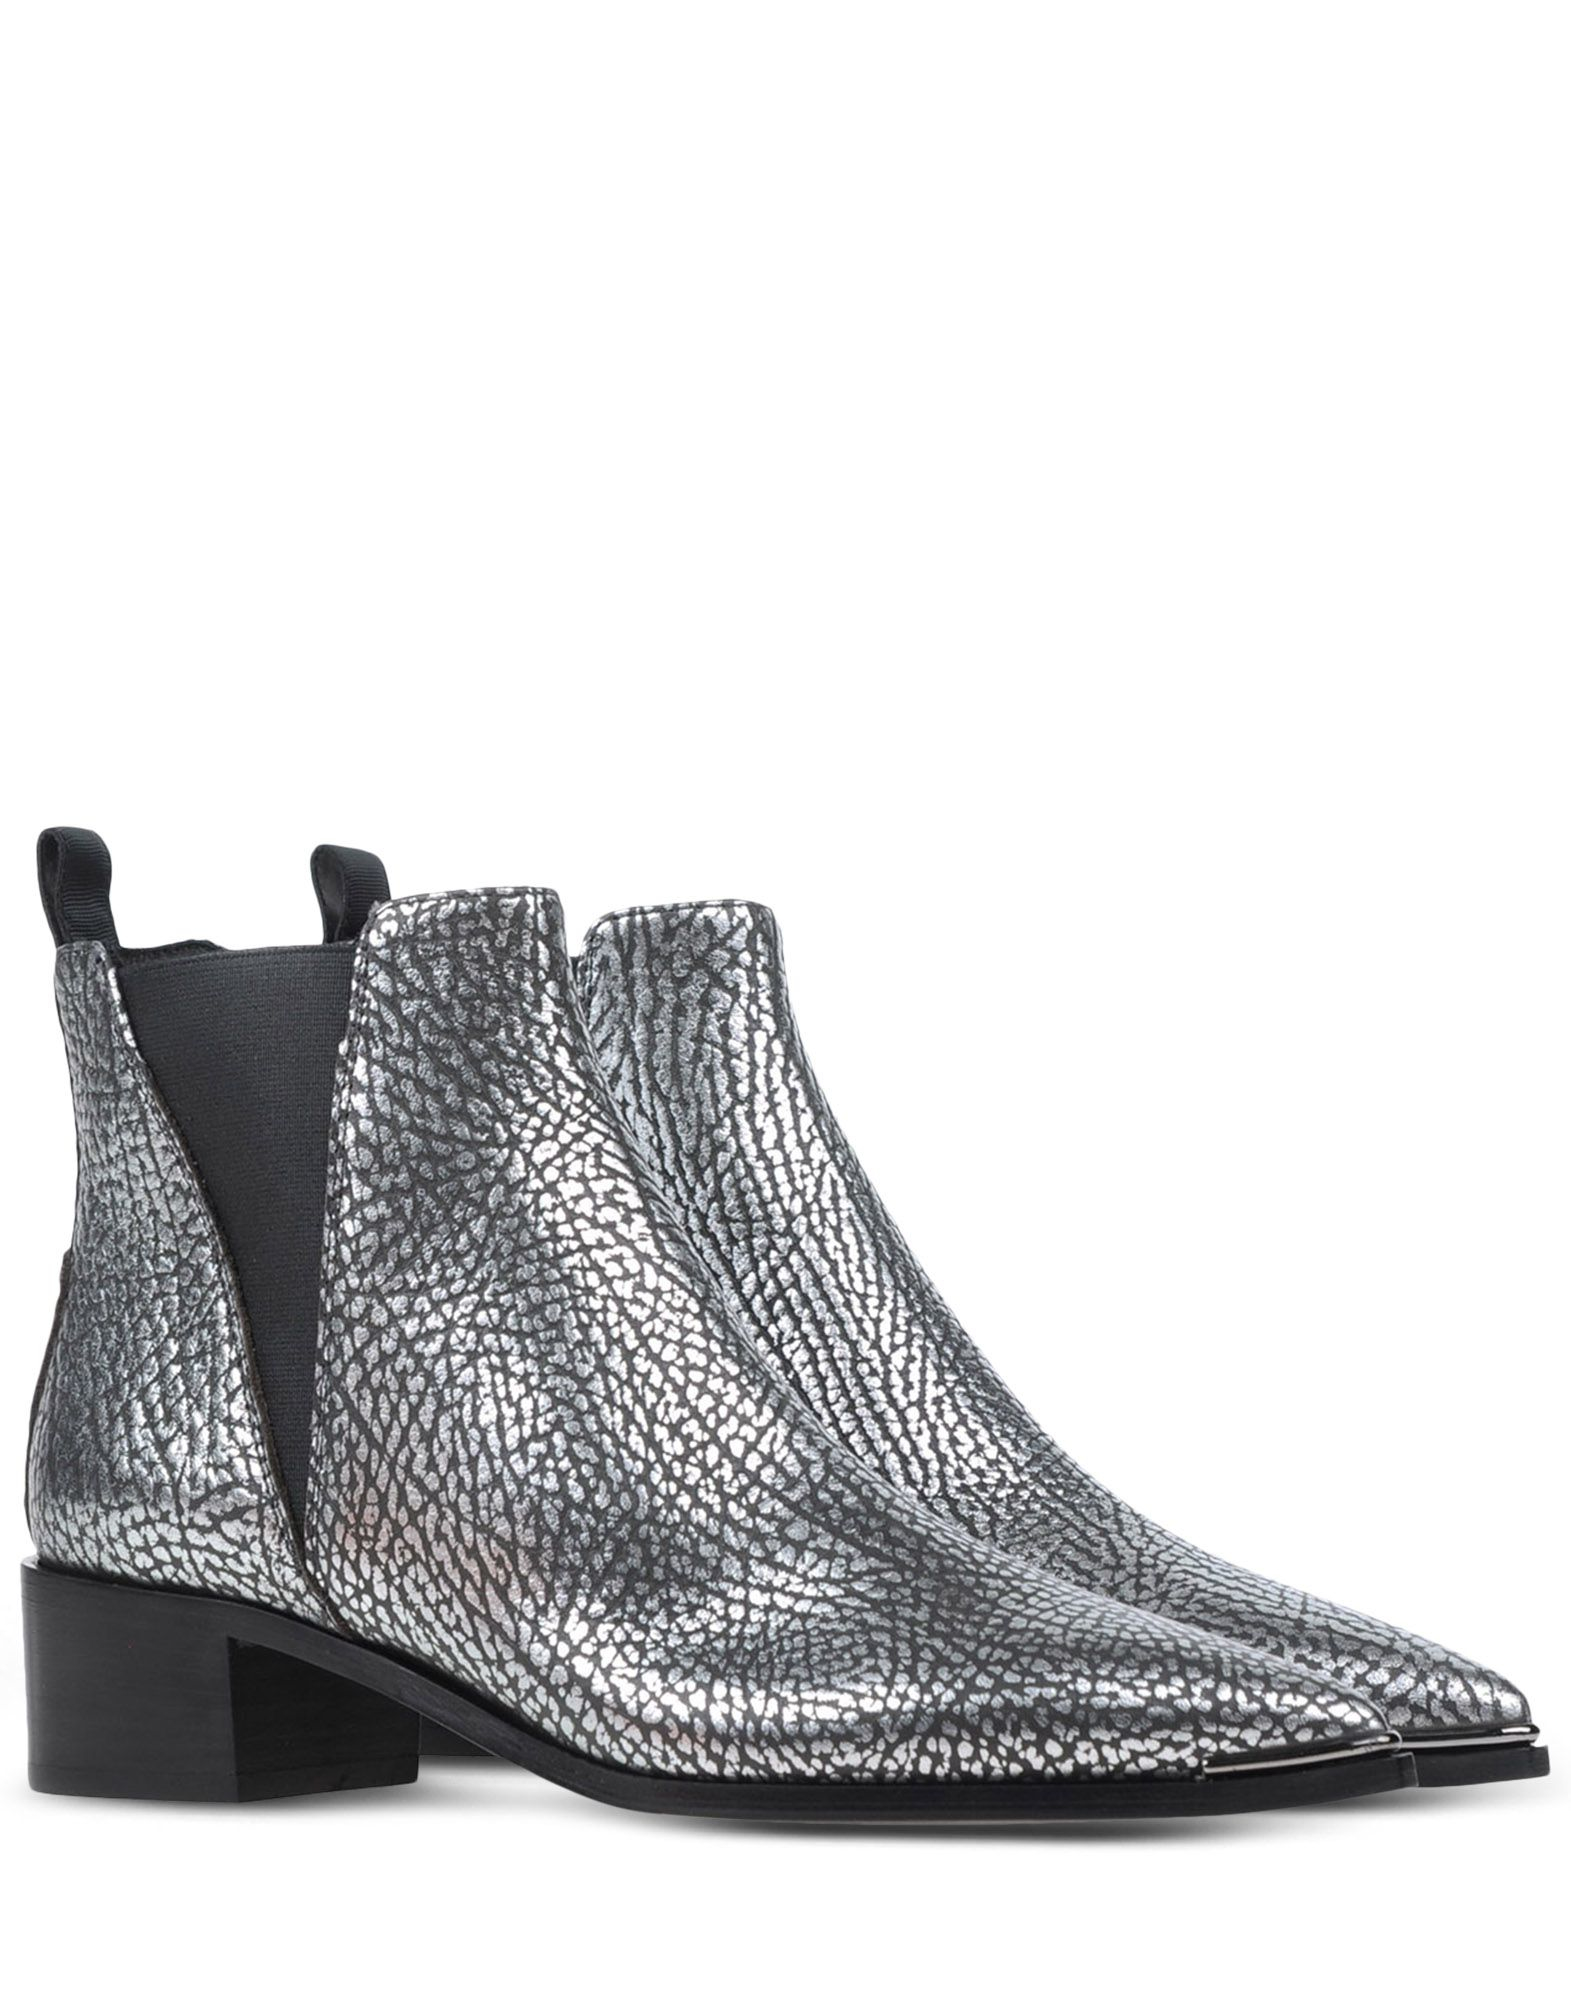 Acne Ankle Boots in Silver